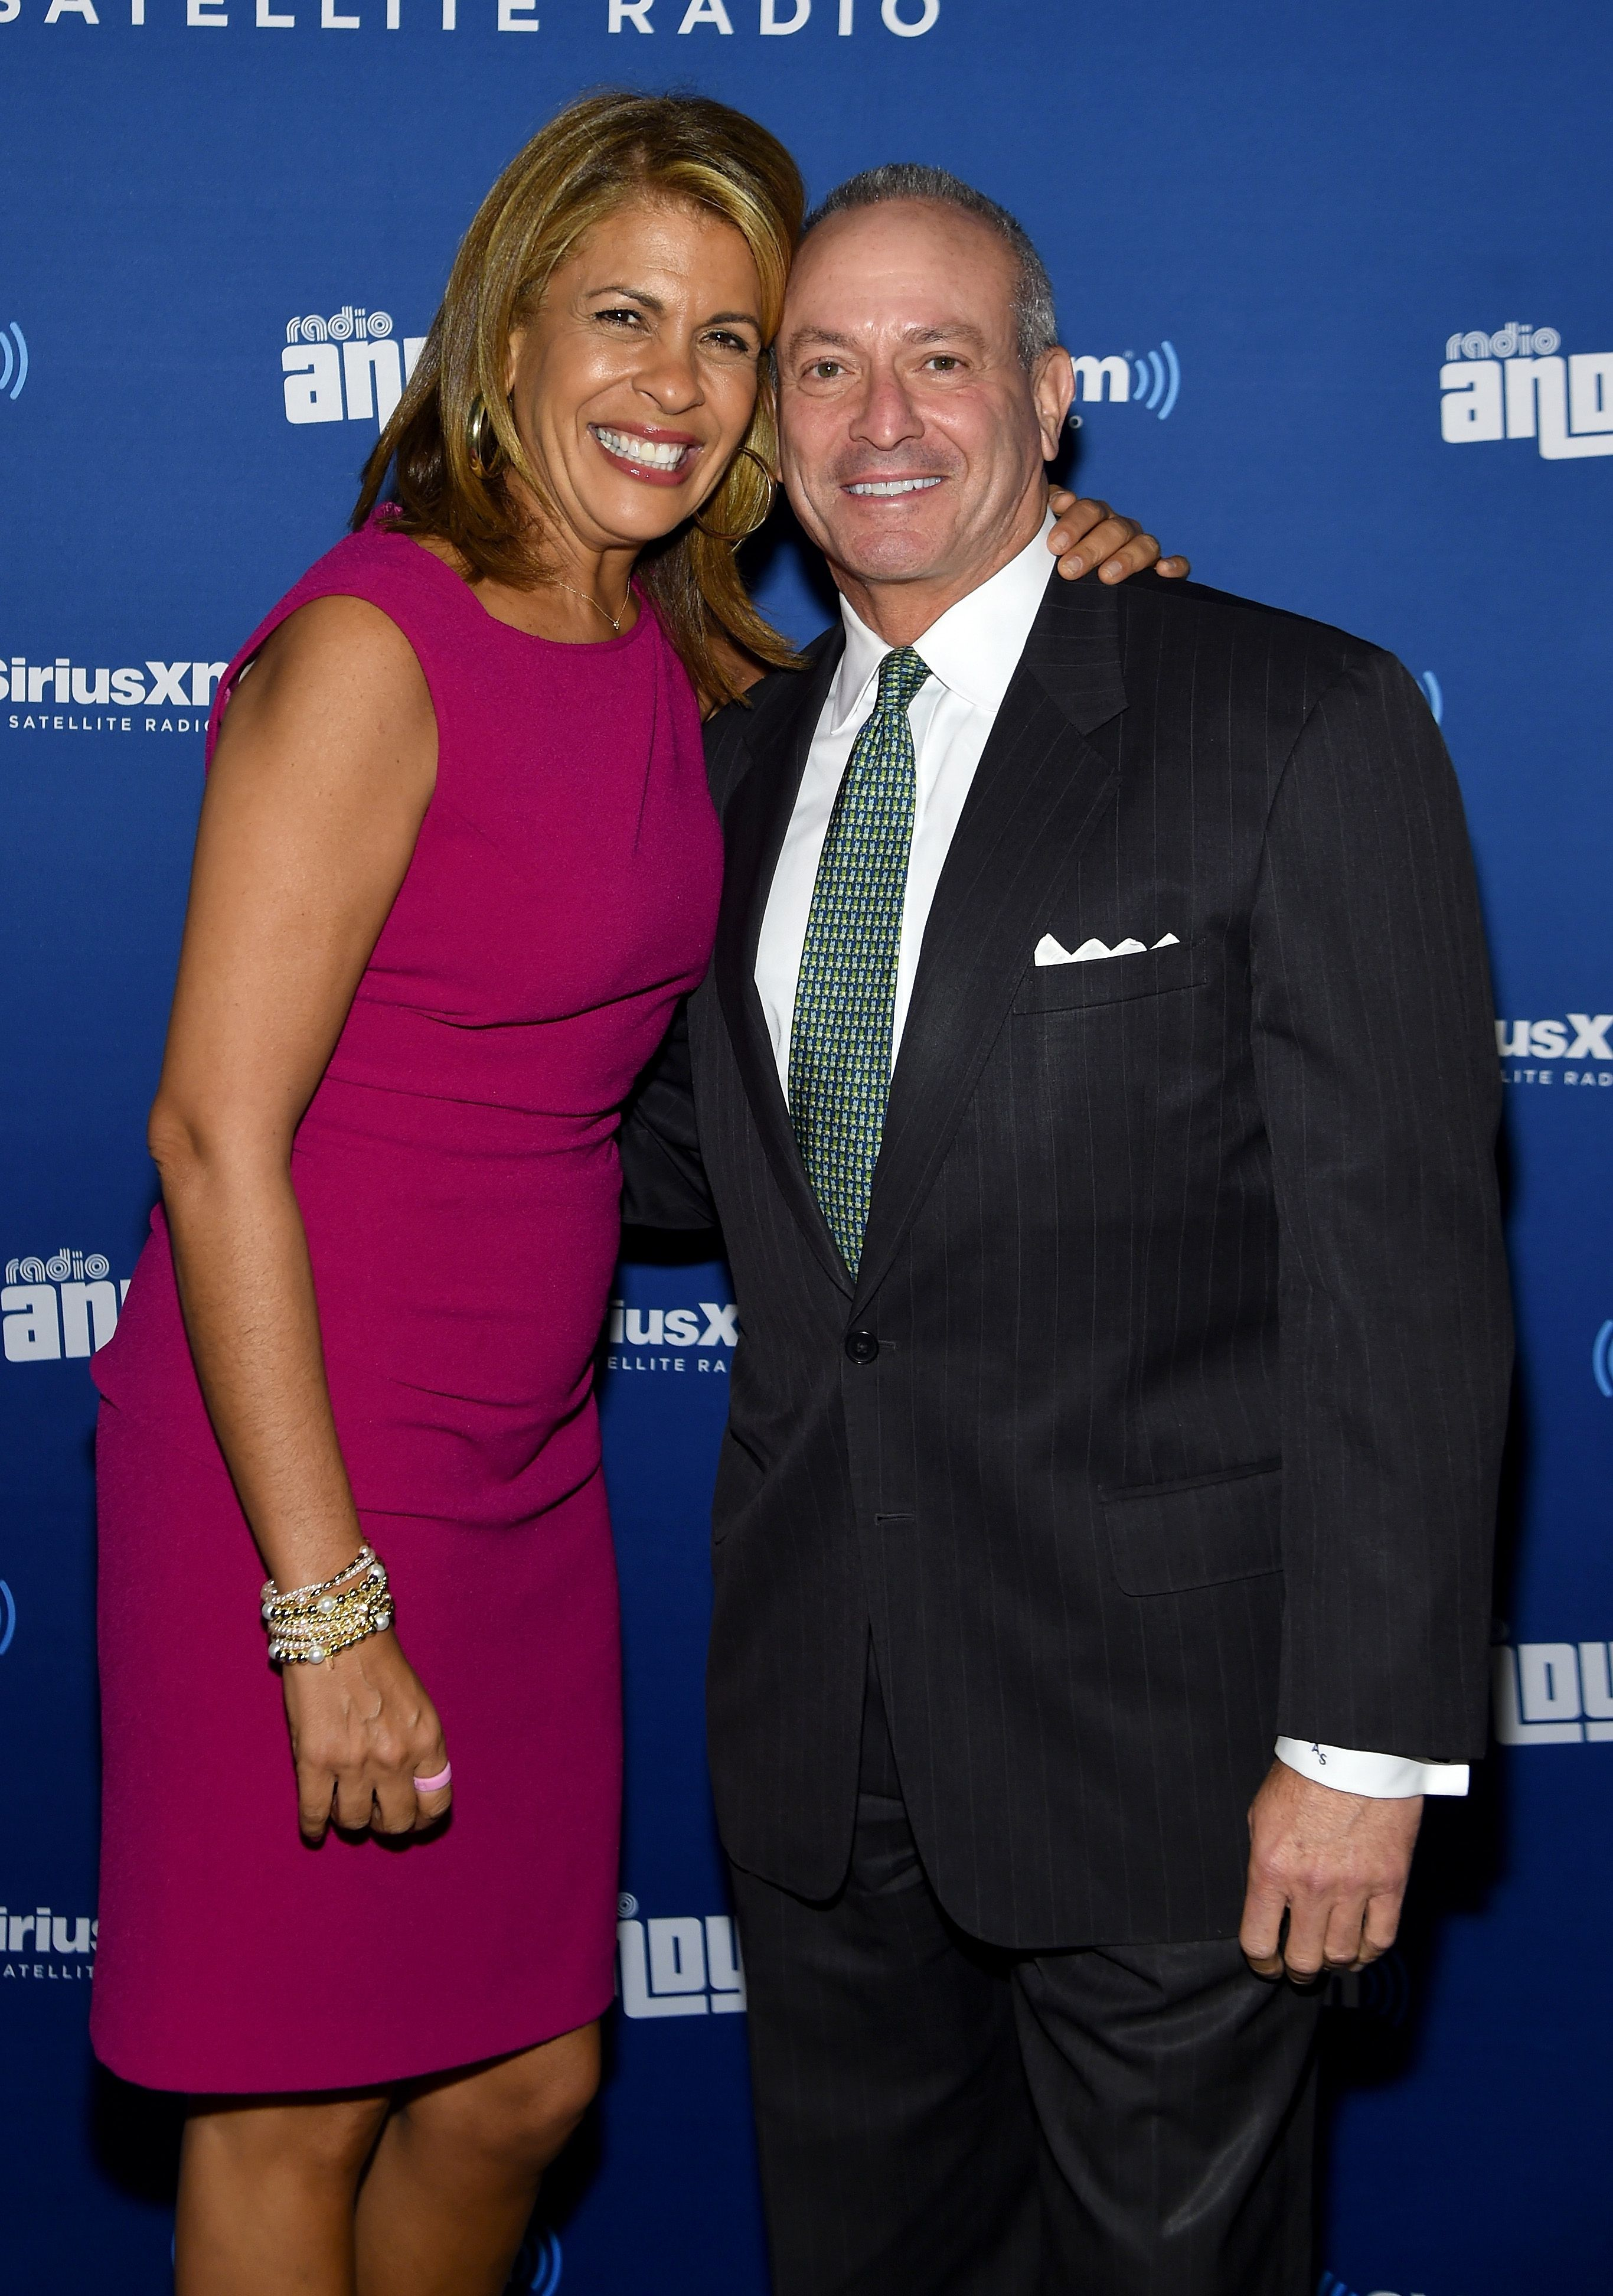 Is Hoda Kotb Engaged? Details on Her Plans to Marry